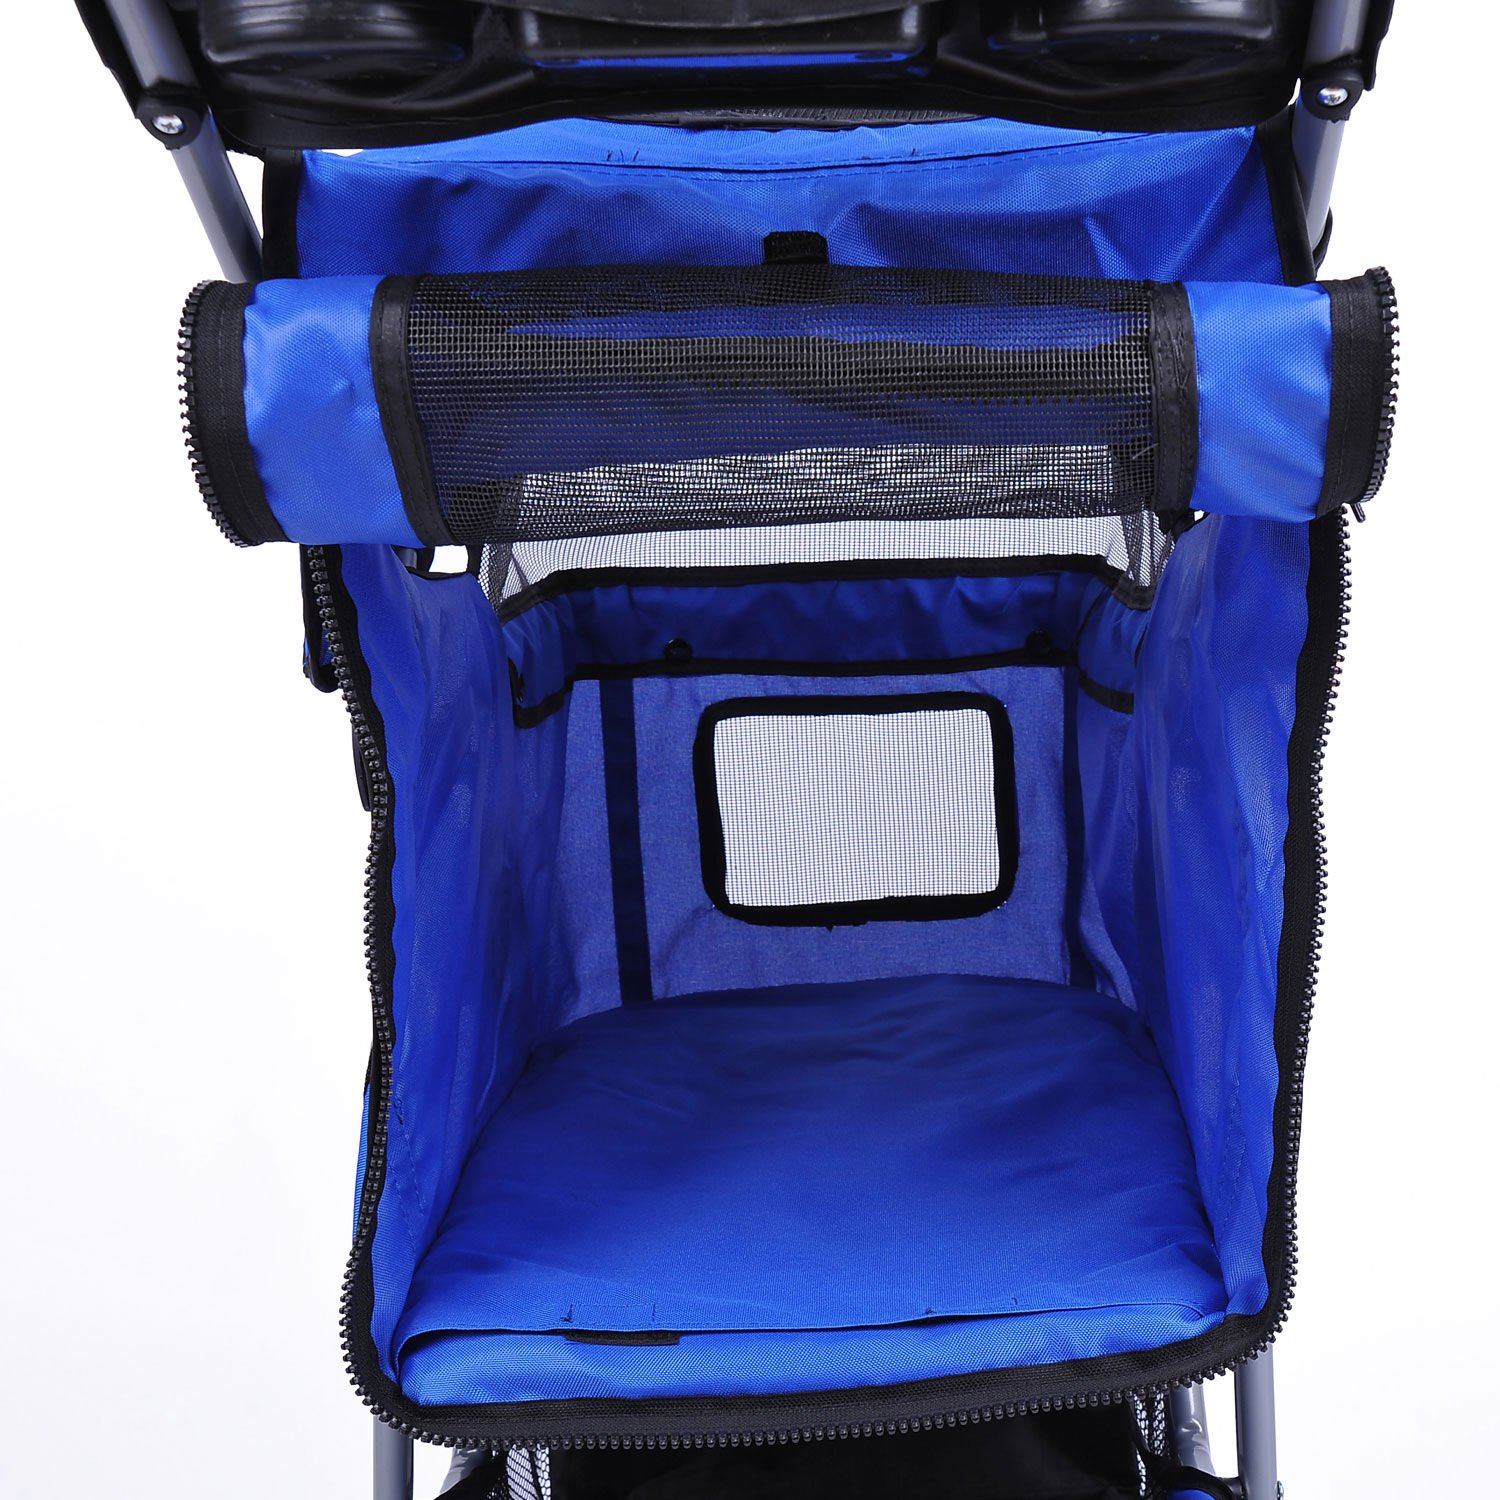 MDOG2 MK0015A 3-Wheel Front and Rear Entry Pet Stroller, Blue by MDOG2 (Image #4)